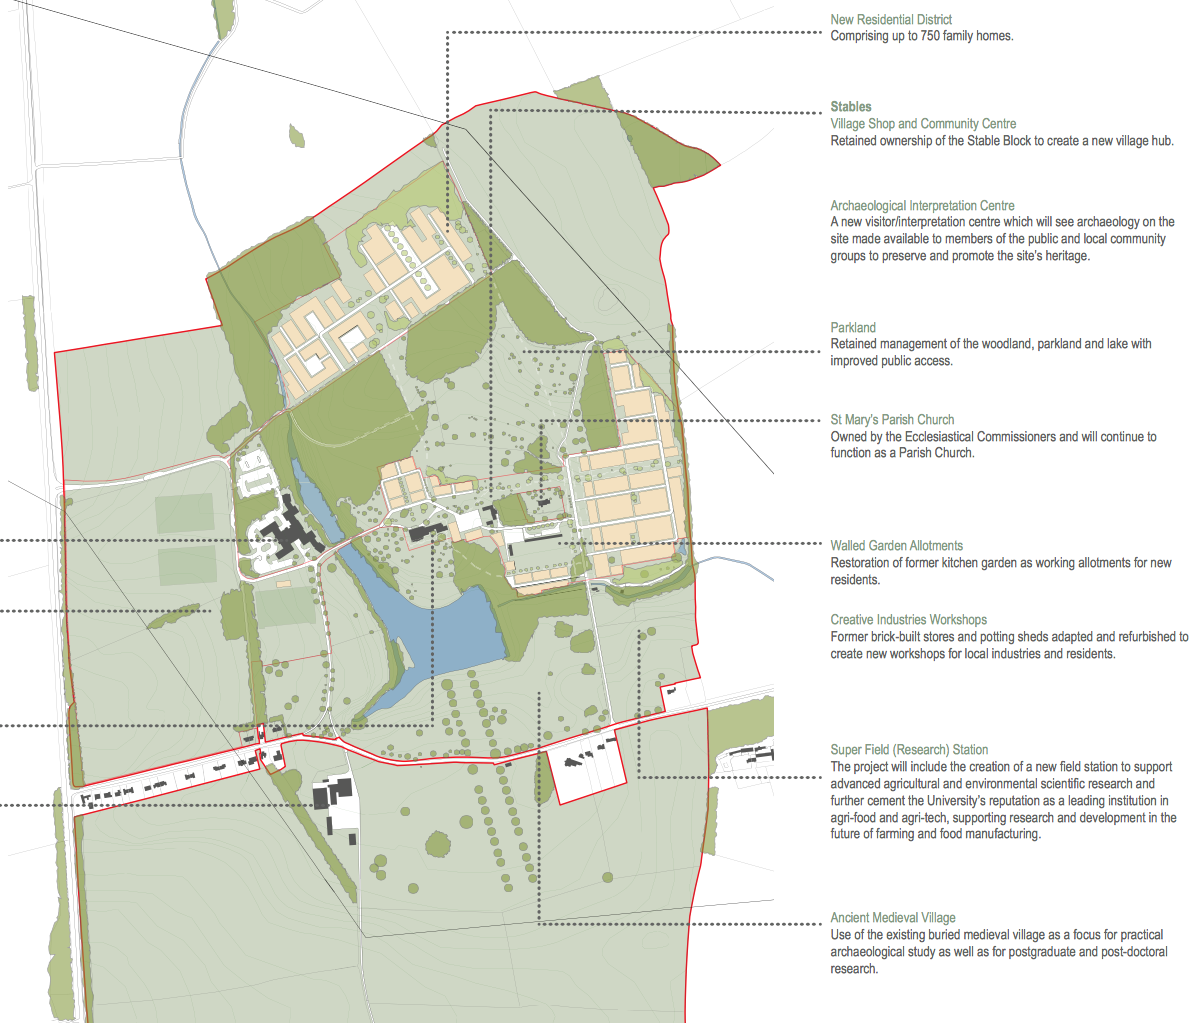 Overview of the proposed masterplan for the development. (Click to view more details)